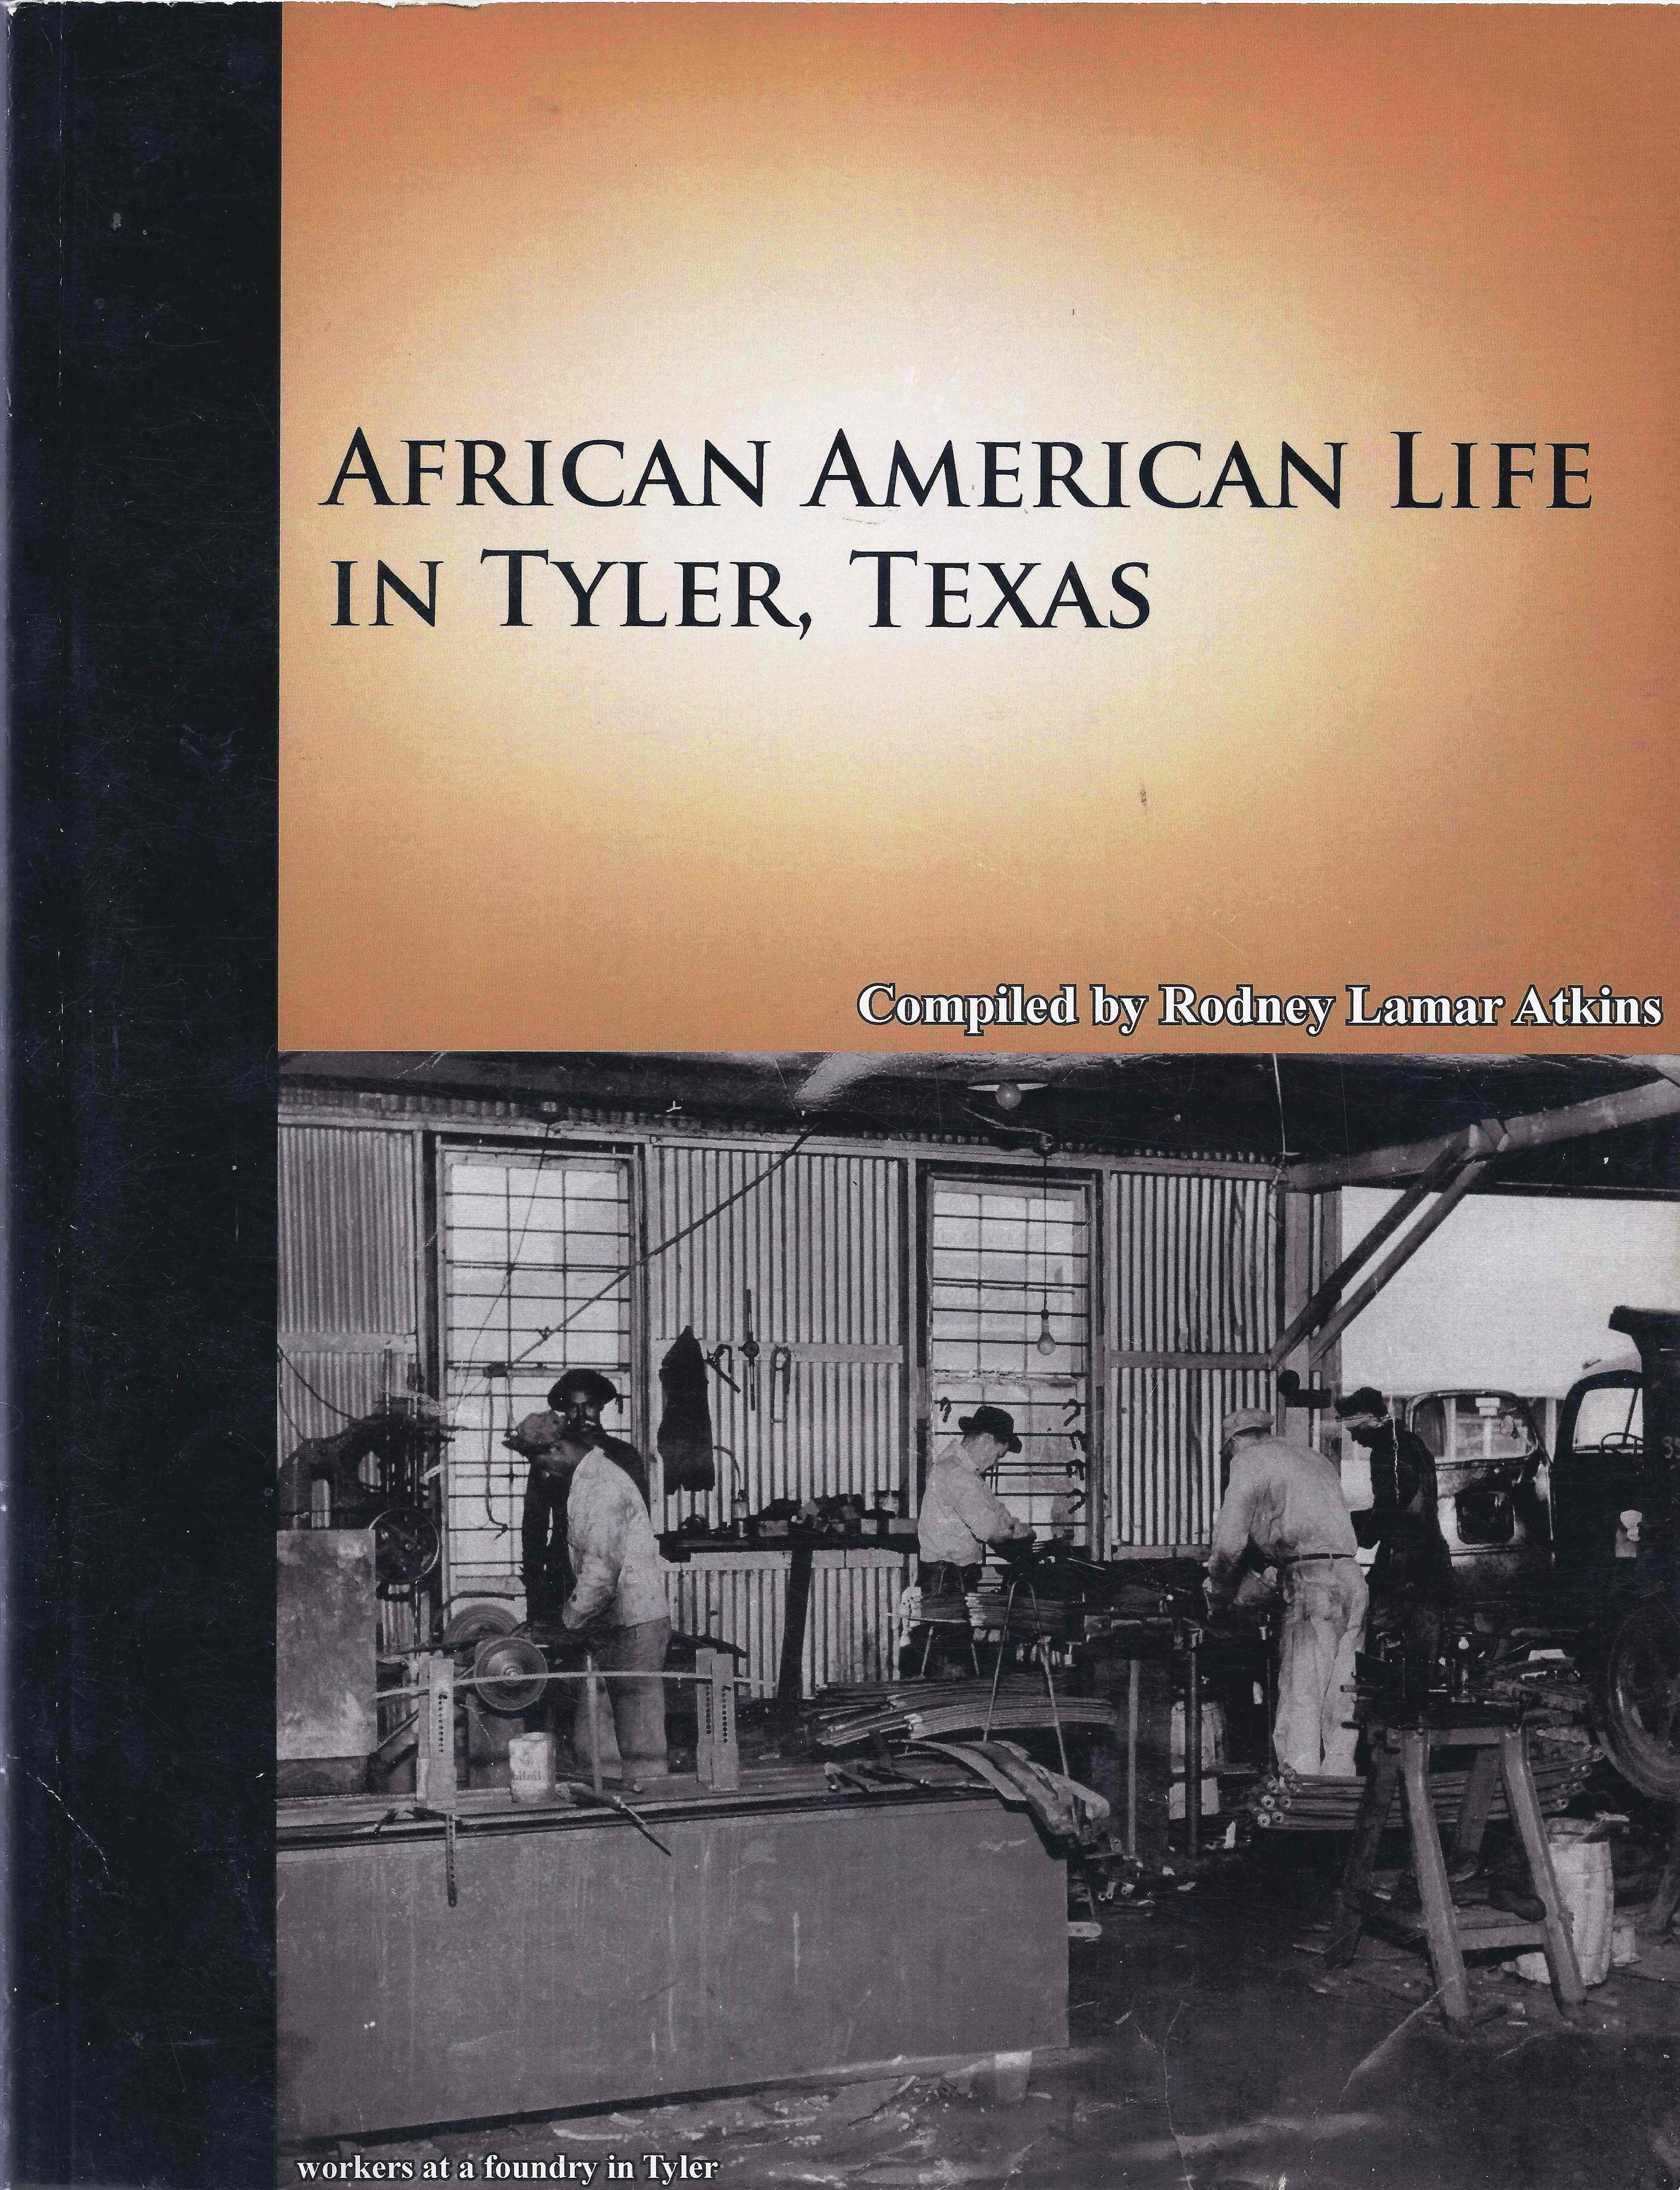 Cover to African American Life in Tyler, Texas compiled by Rodney Lamar Atkins published in 2008.